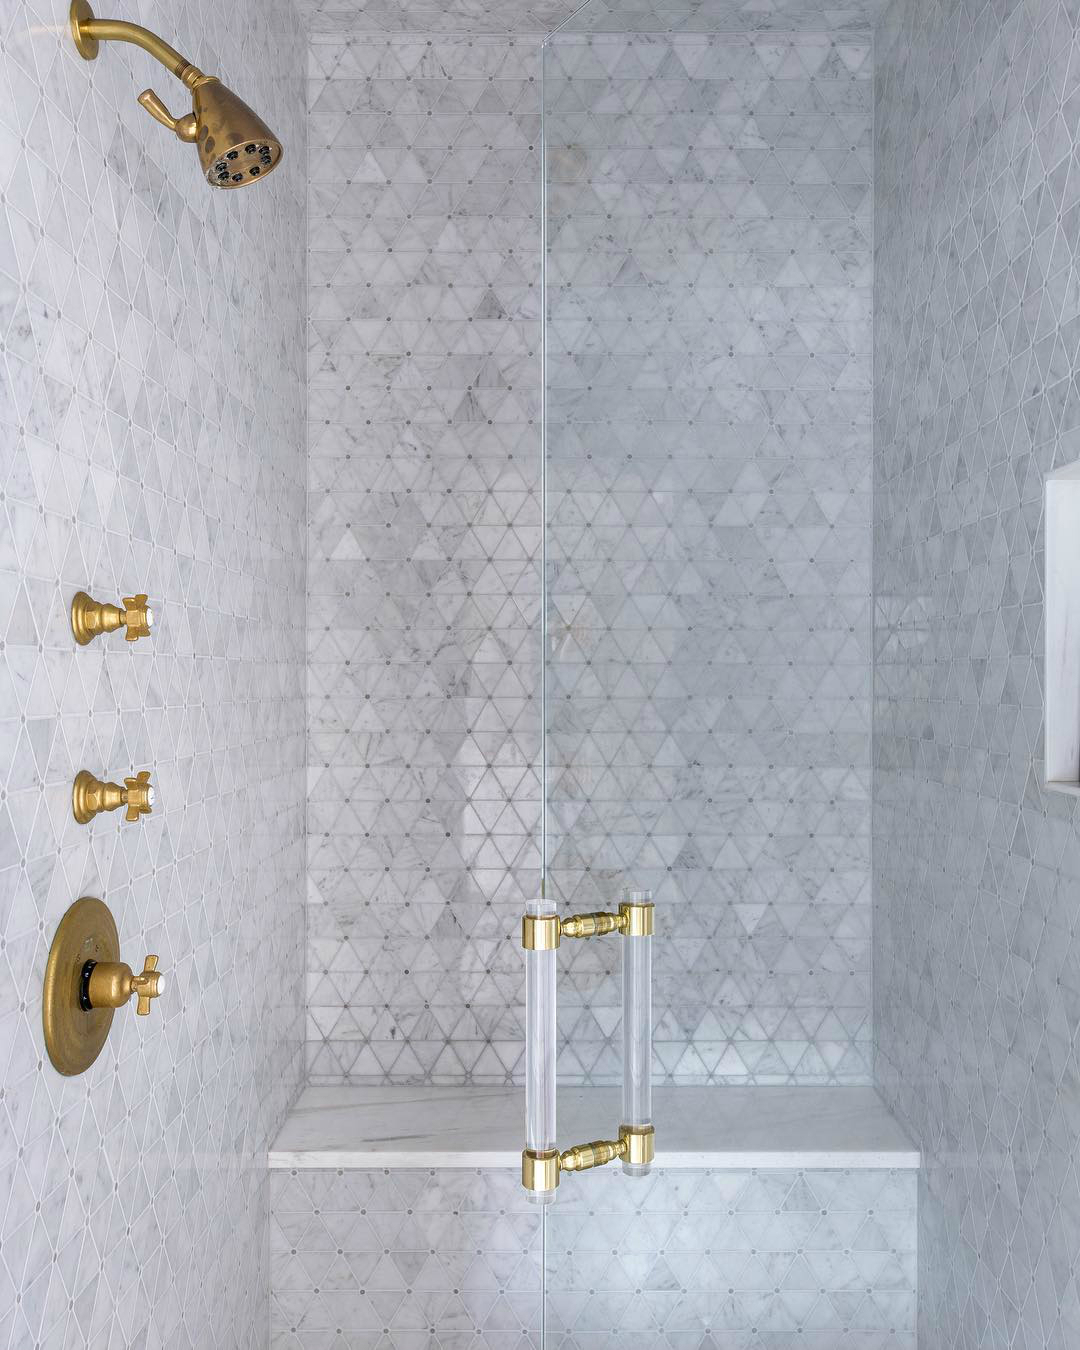 newport brass traditional shower trim with cross handles in satin gold - the ultimate guide to luxury plumbing by the delight of design